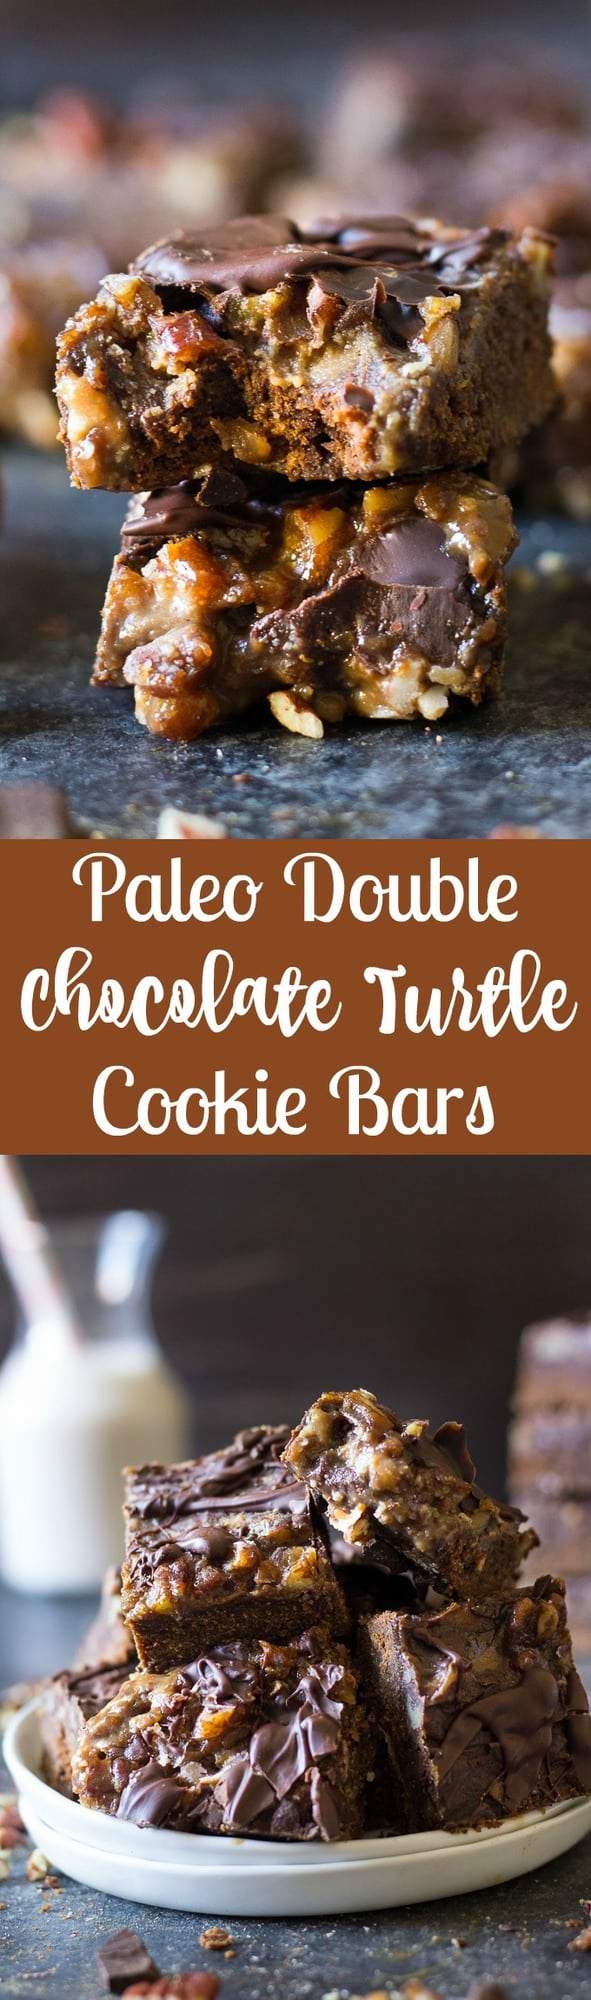 paleo-double-chocolate-turtle-cookie-bars